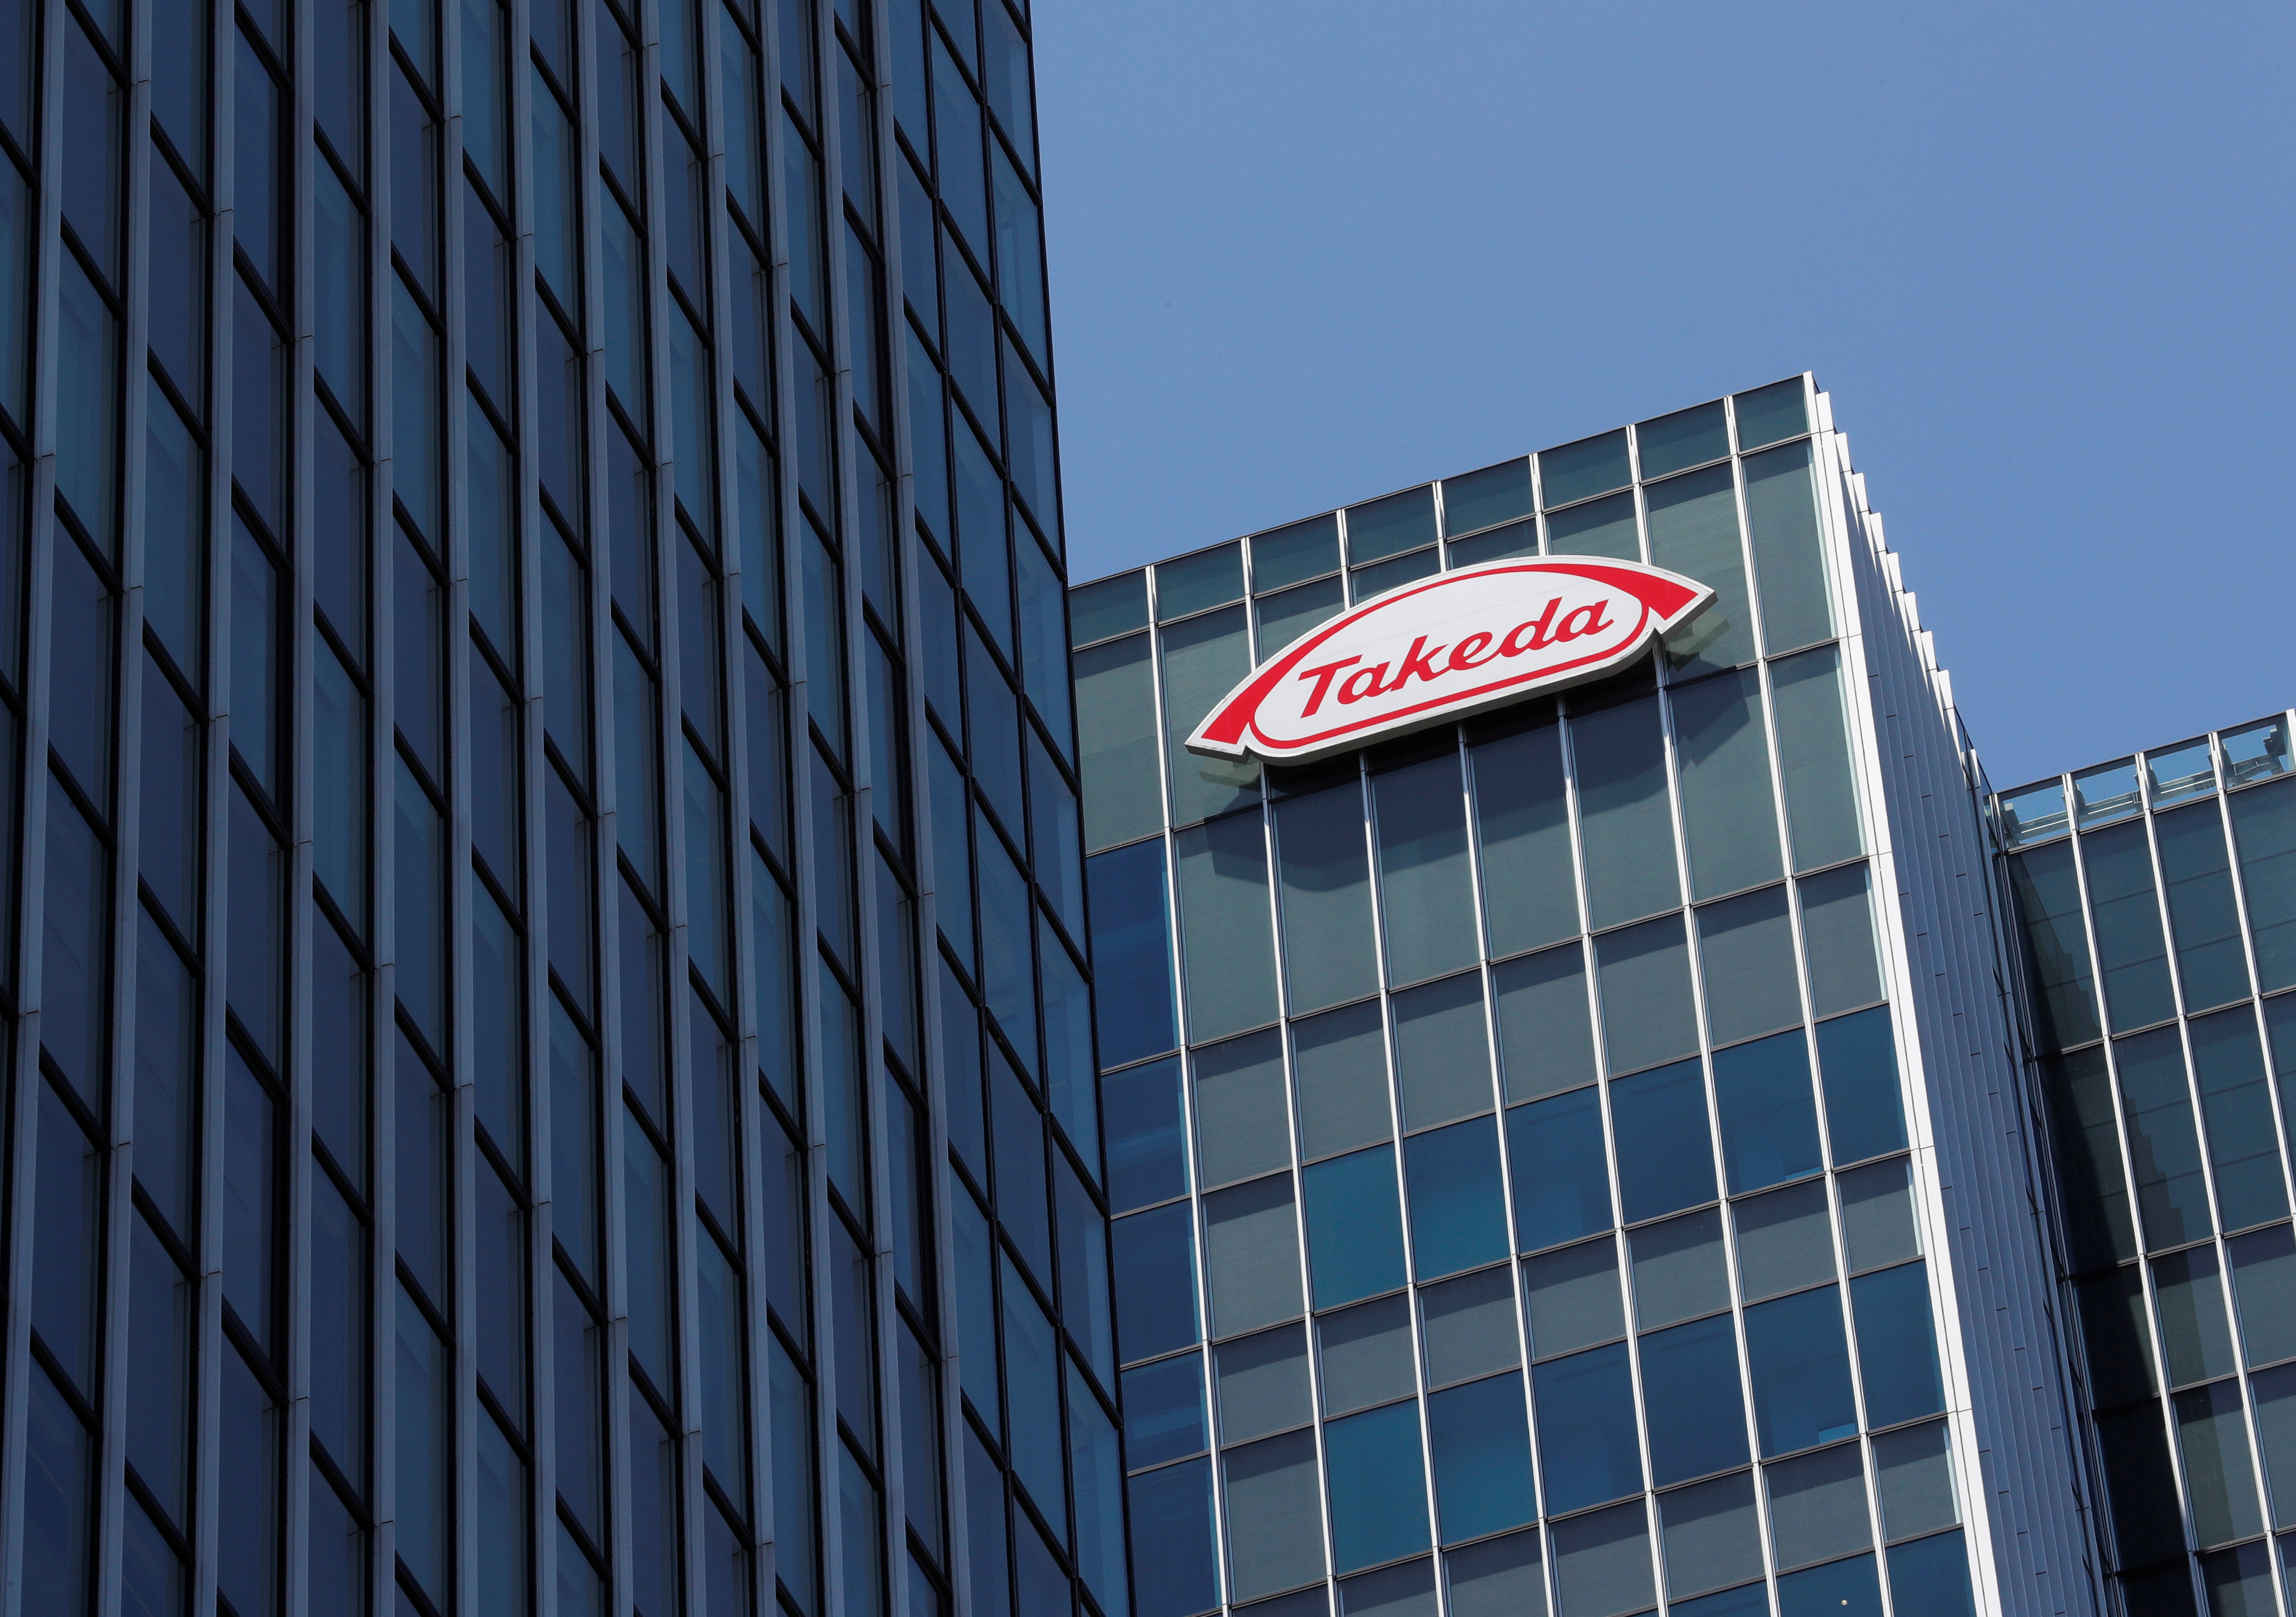 Takeda Pharmaceutical Co's logo is seen at its new headquarters in Tokyo, Japan, July 2, 2018. REUTERS/Kim Kyung-Hoon